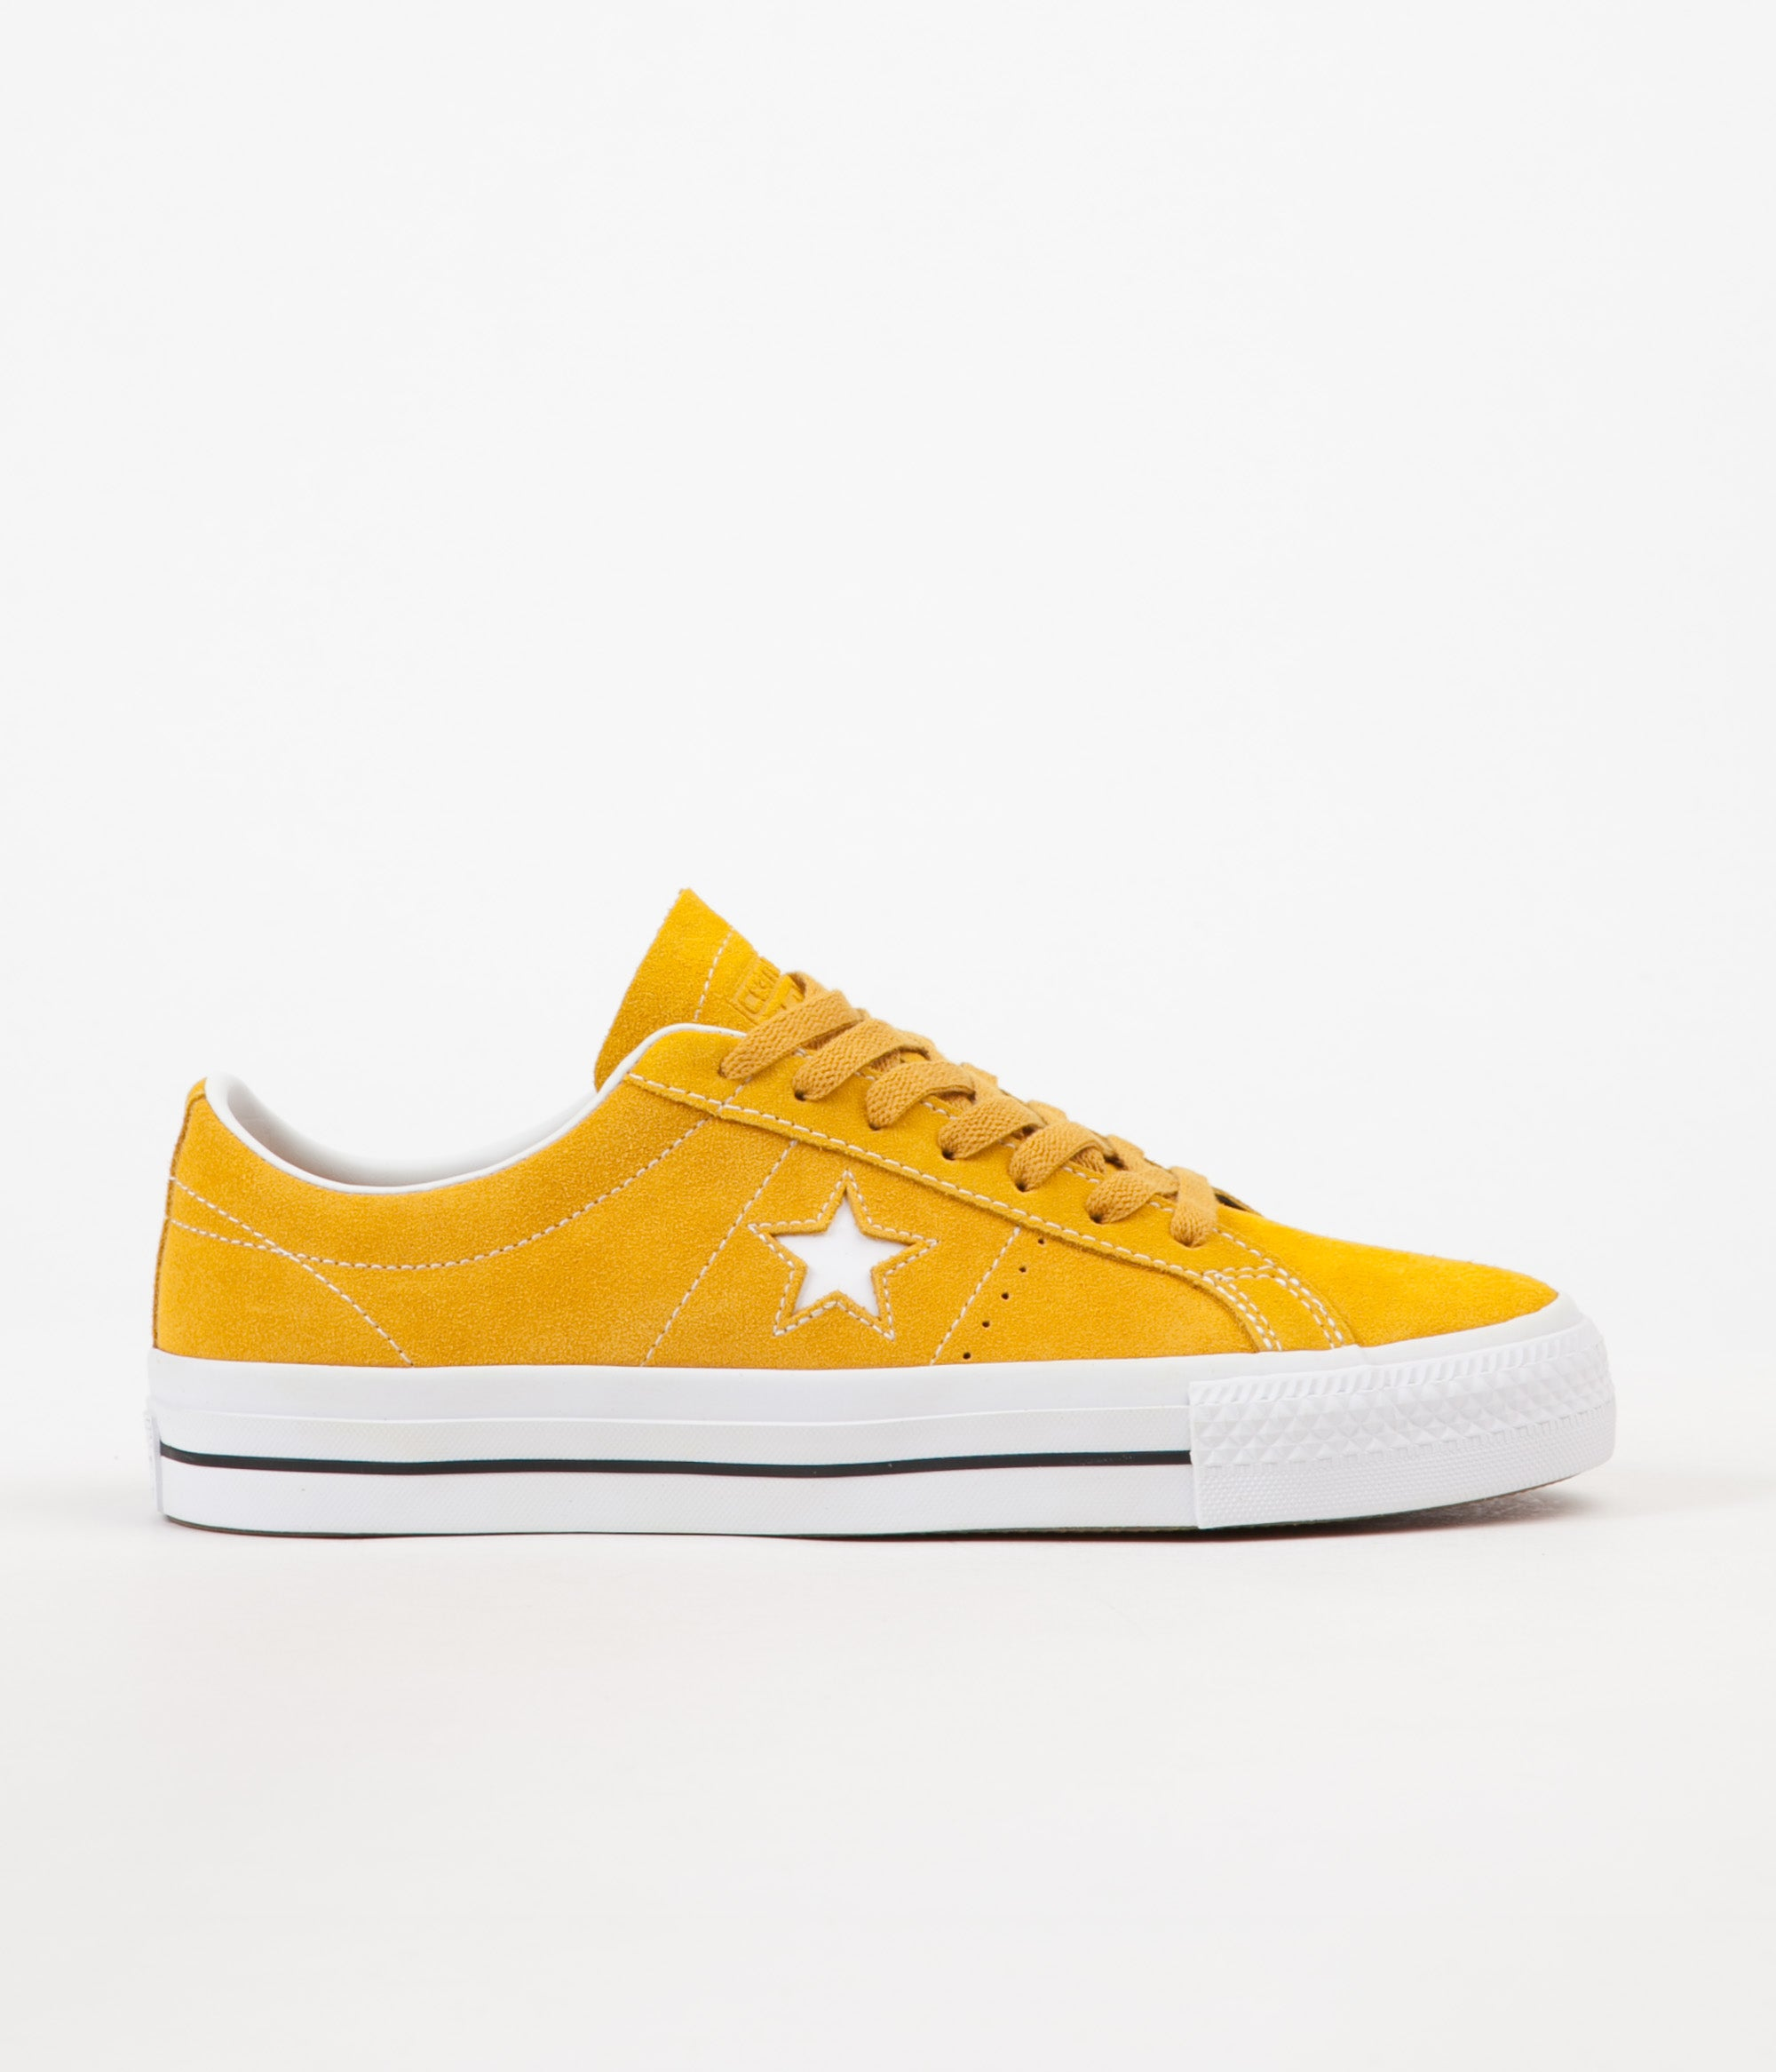 Converse One Star Pro Ox Shoes - Mineral Yellow   White   Black ... 84afcd0b0